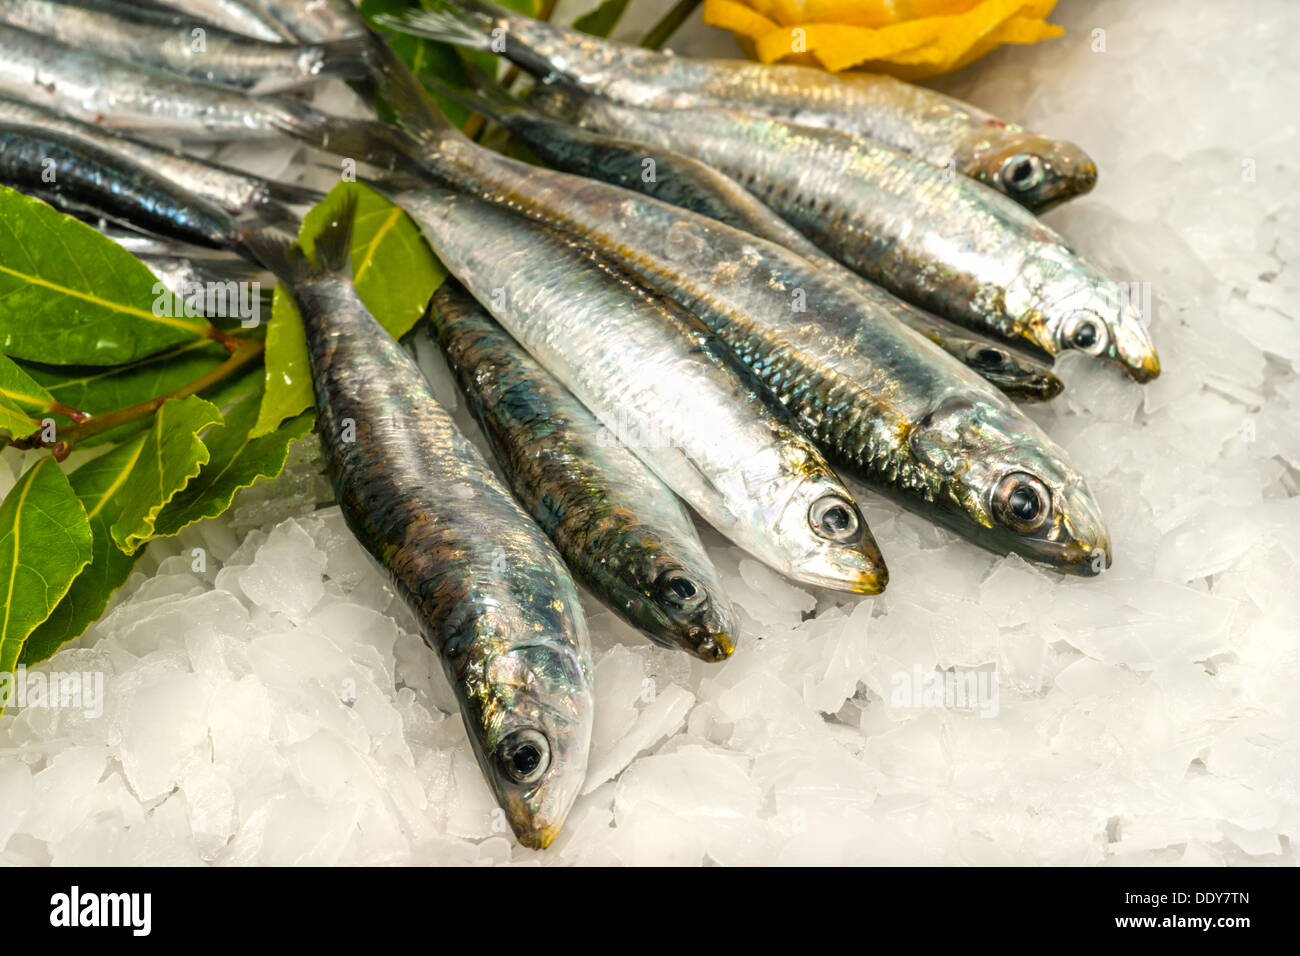 Fresh Sardines and Anchovies on ice. - Stock Image